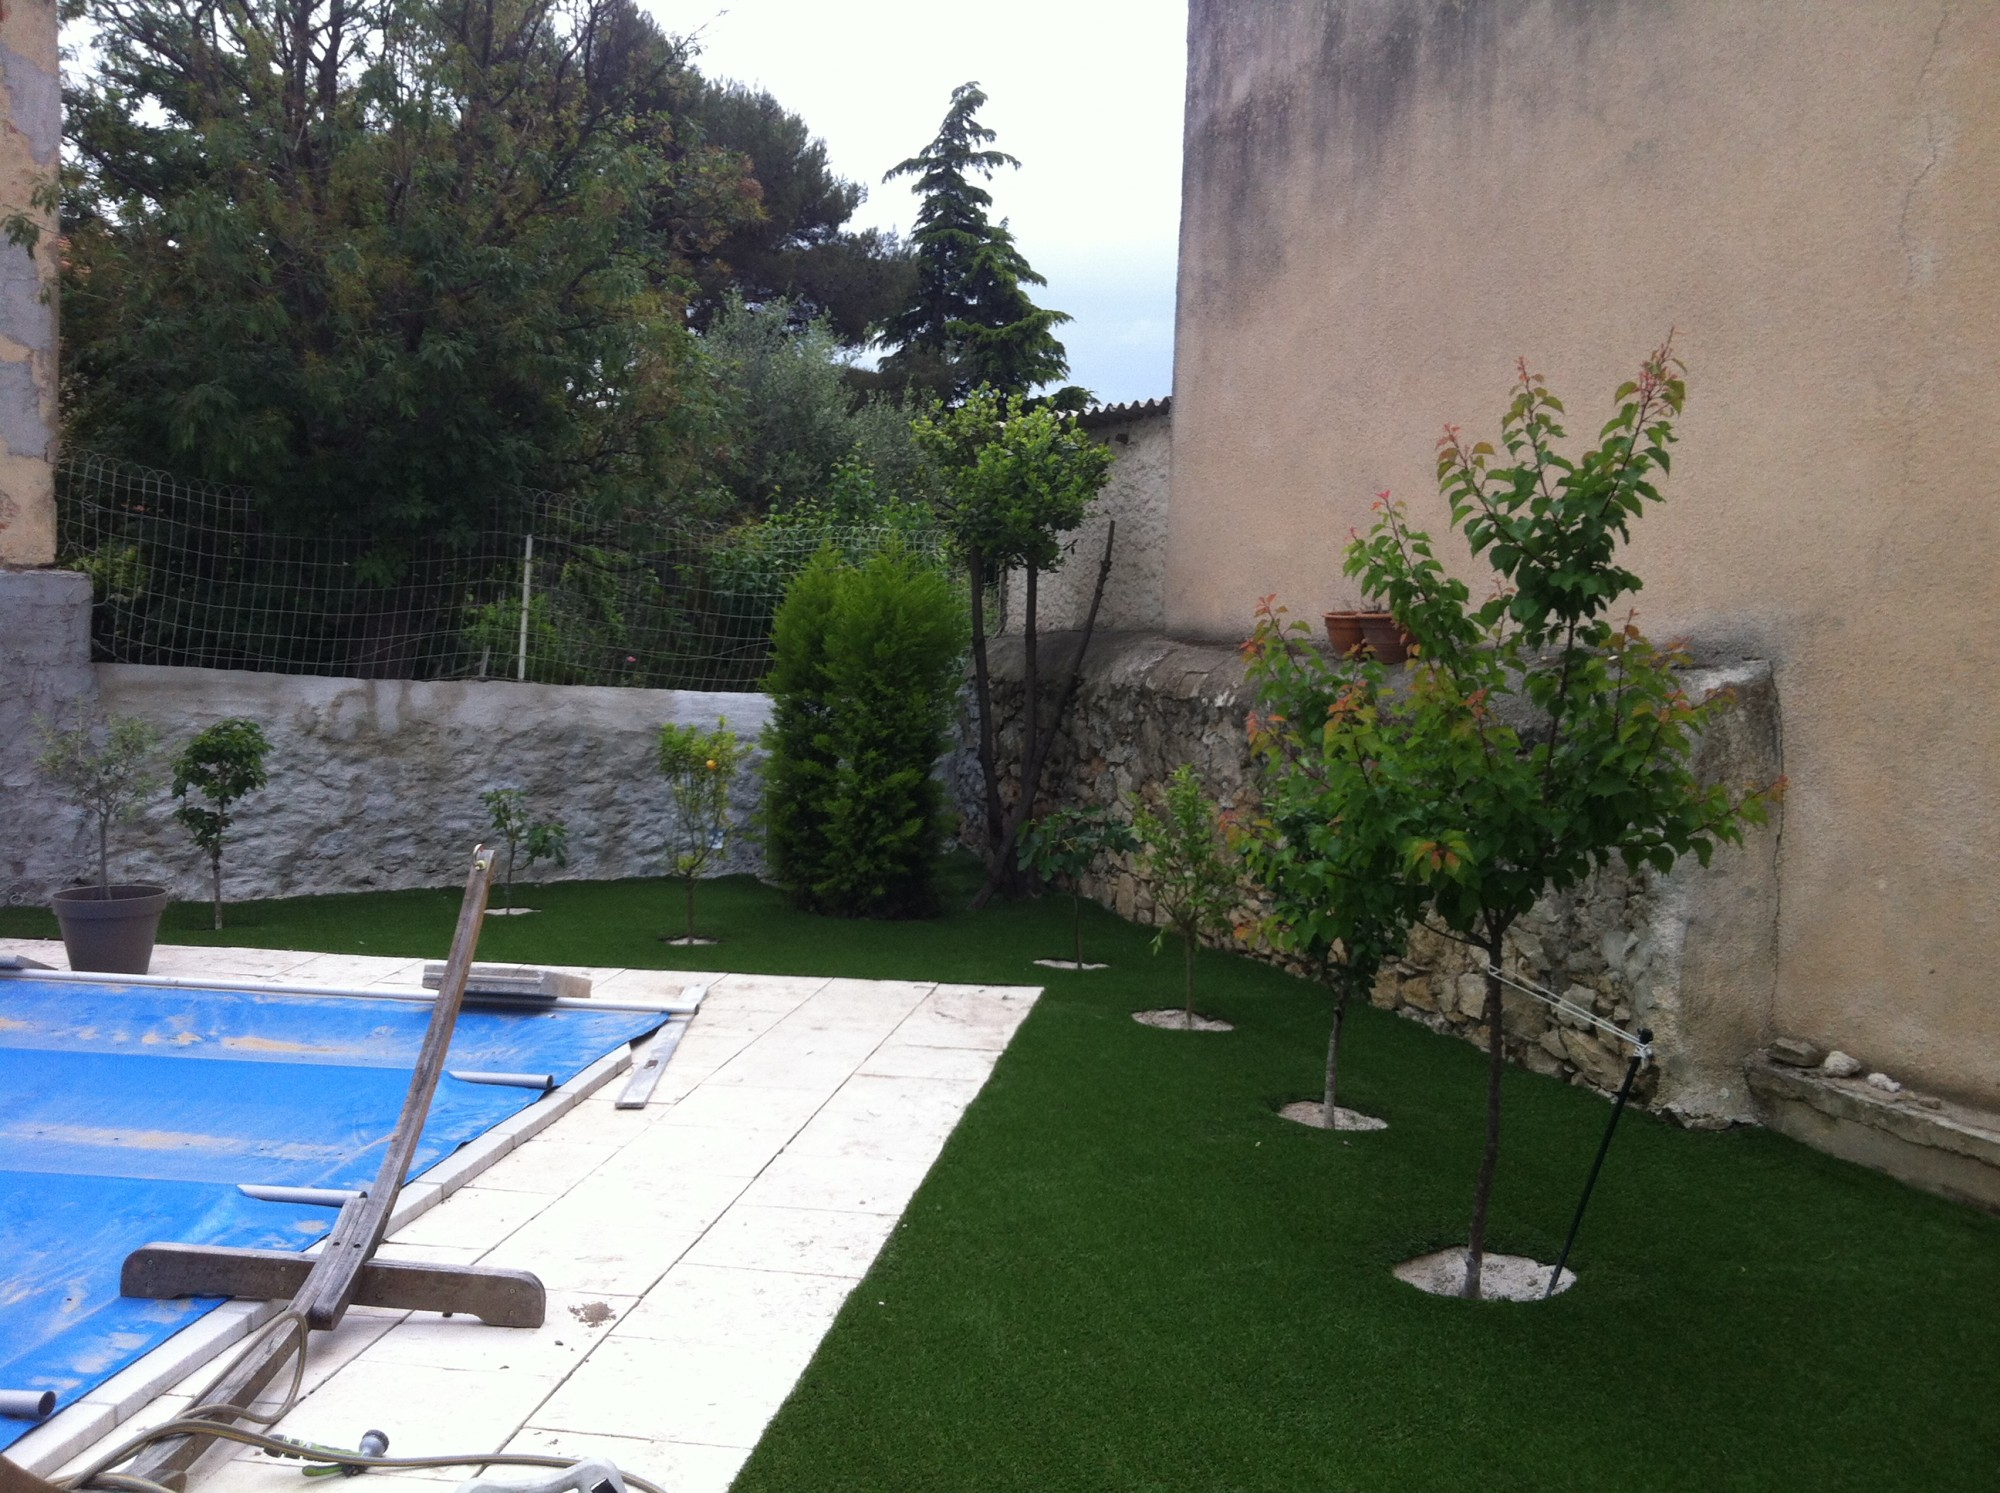 Installation d 39 un gazon synth tique pr s d 39 une piscine for Piscine et jardin marseille 2017